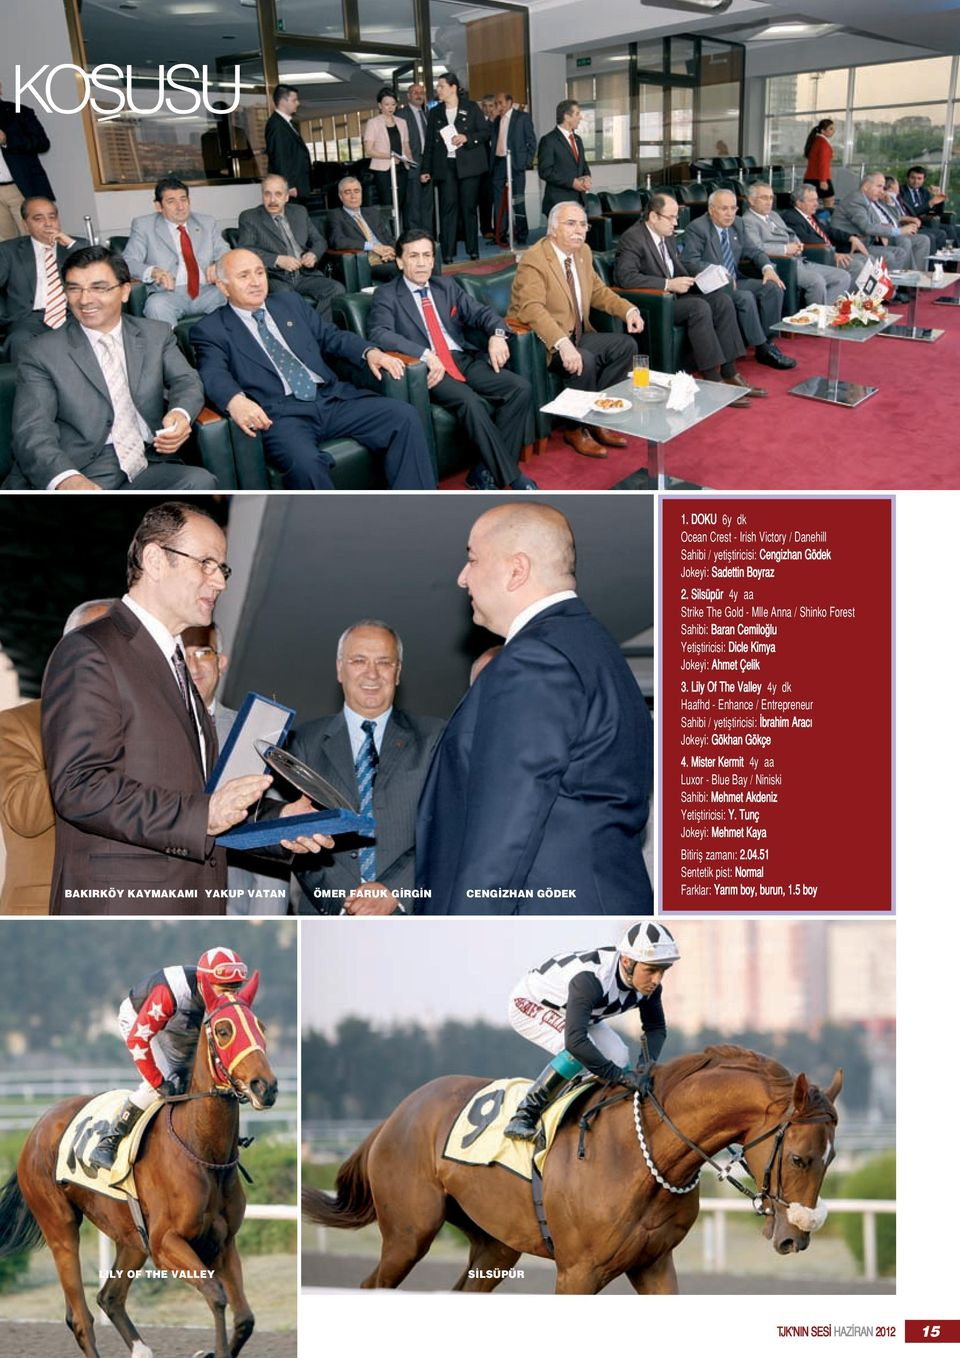 Lily Of The Valley 4y dk Haafhd - Enhance / Entrepreneur Sahibi / yetifltiricisi: brahim Arac Jokeyi: Gökhan Gökçe 4.